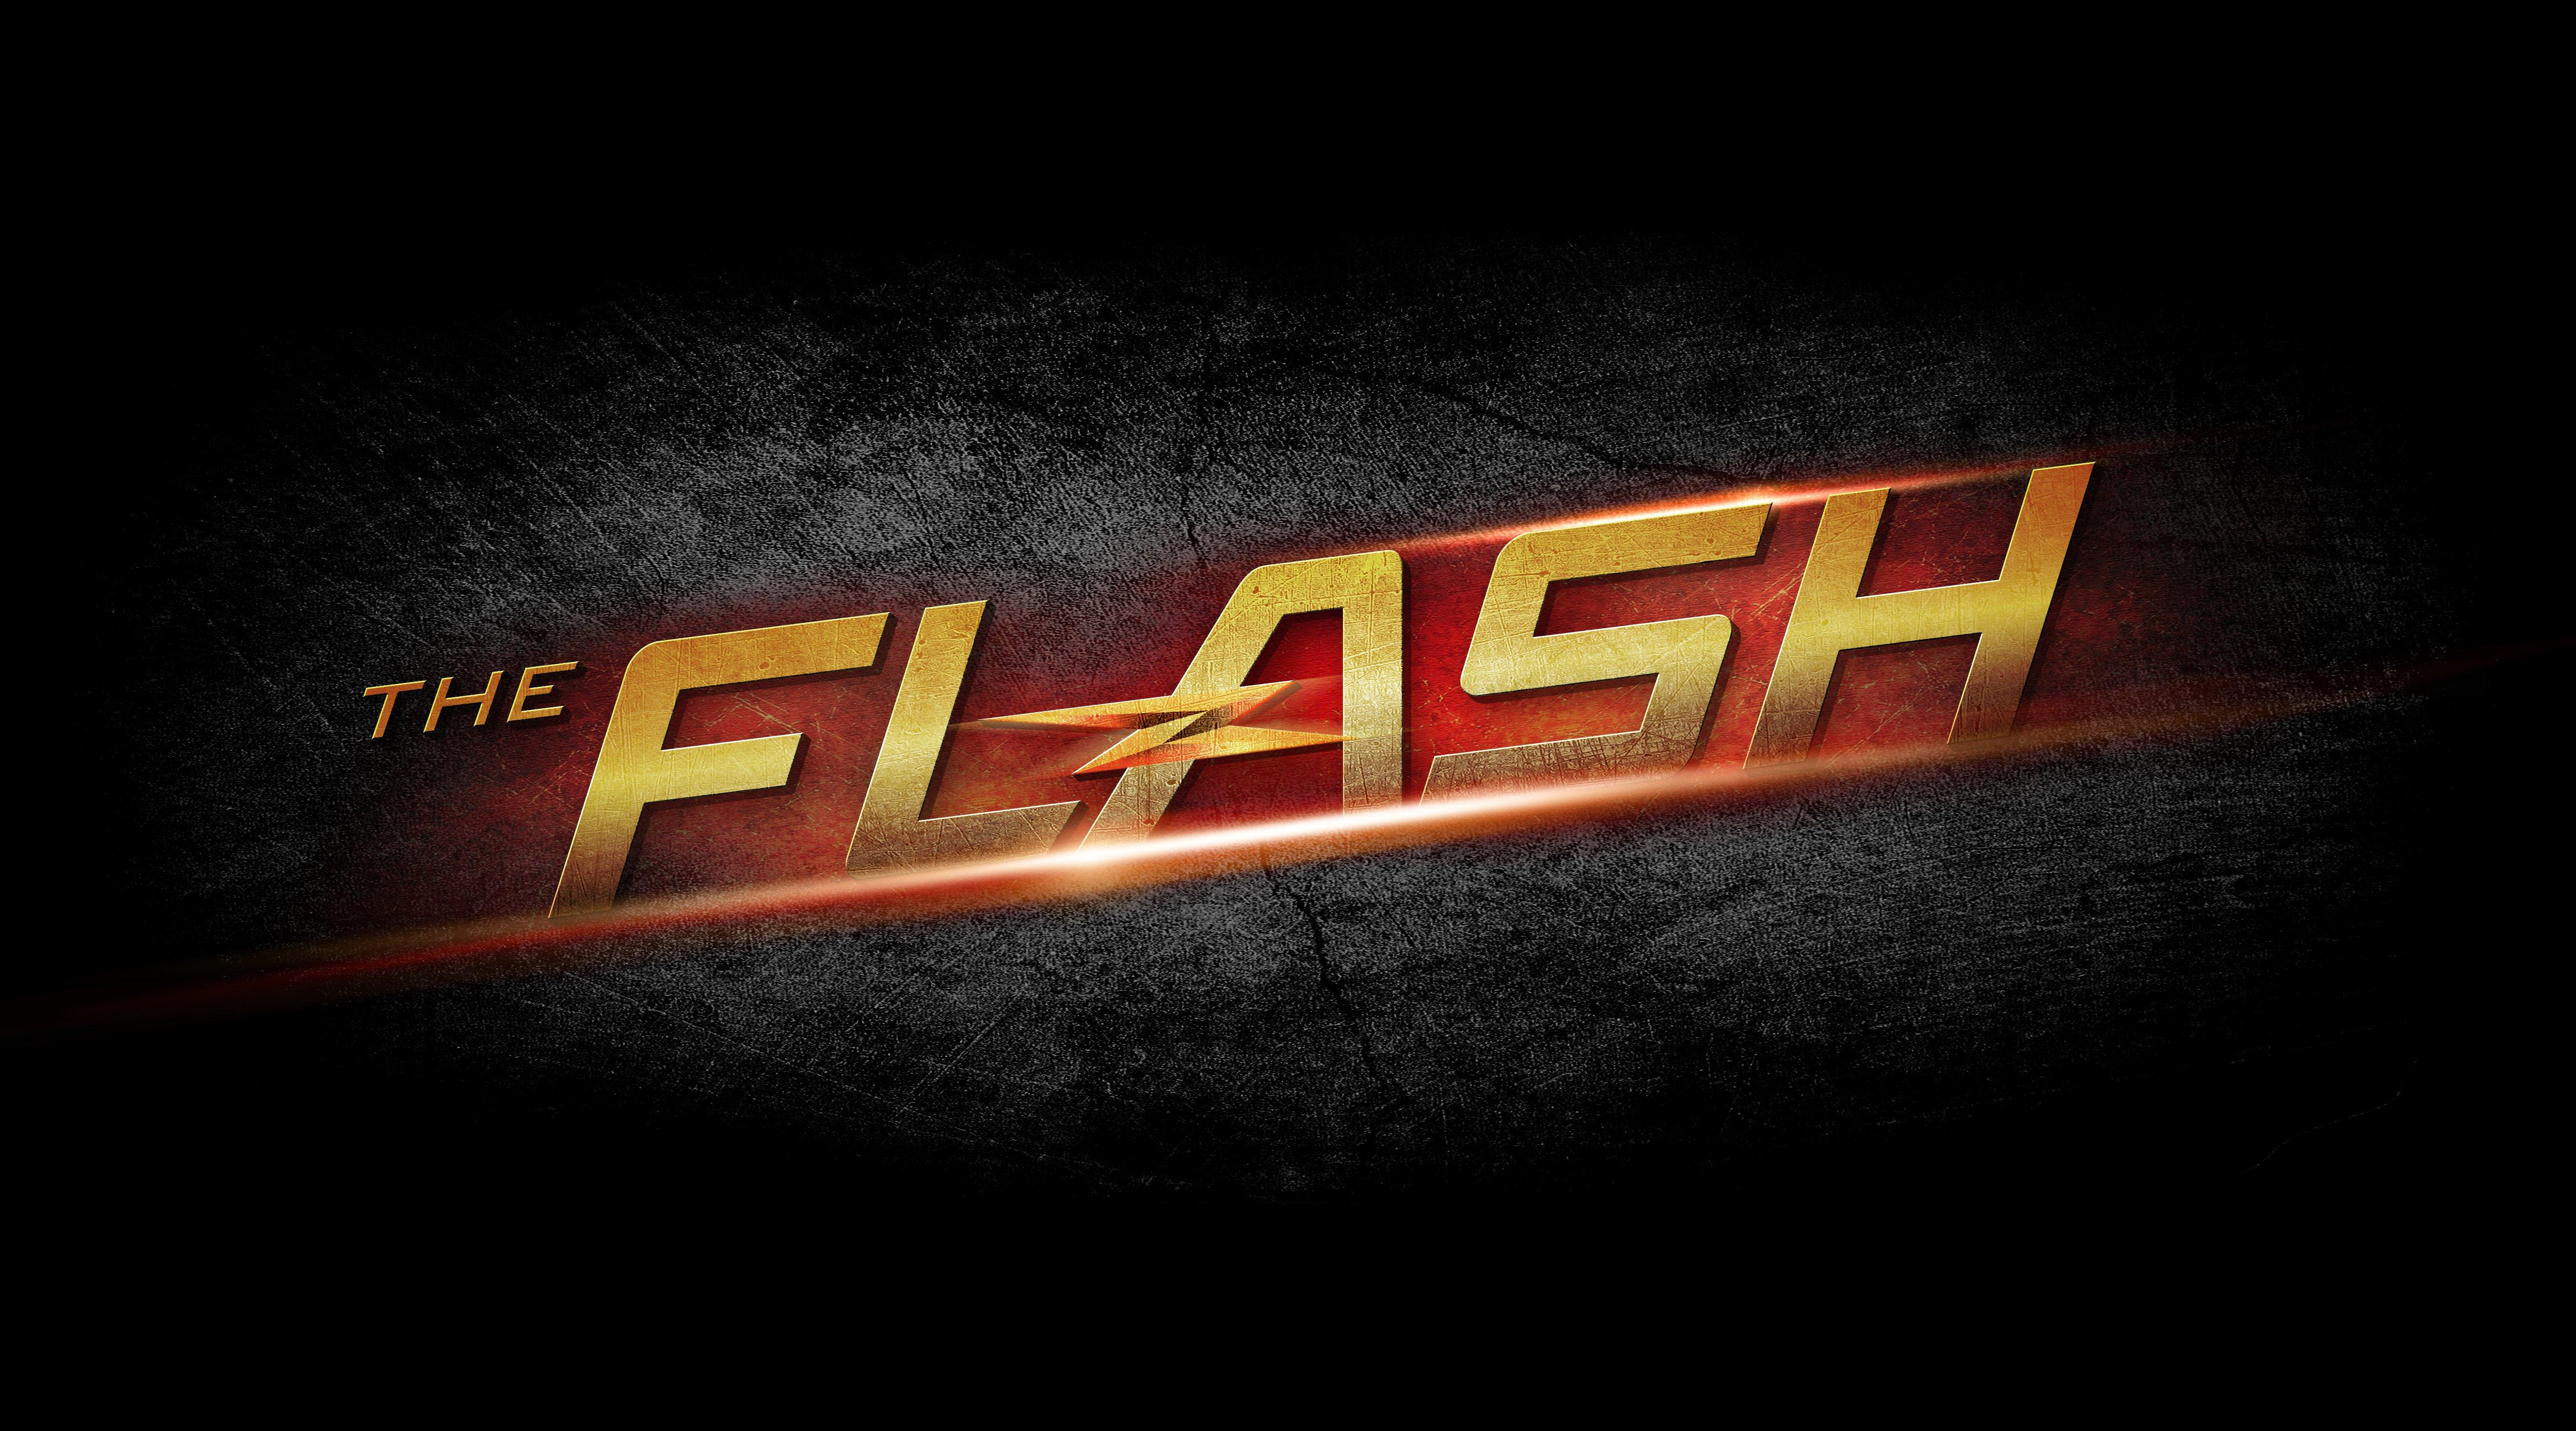 The Flash HD Logo, HD Tv Shows, 4k Wallpapers, Images, Backgrounds